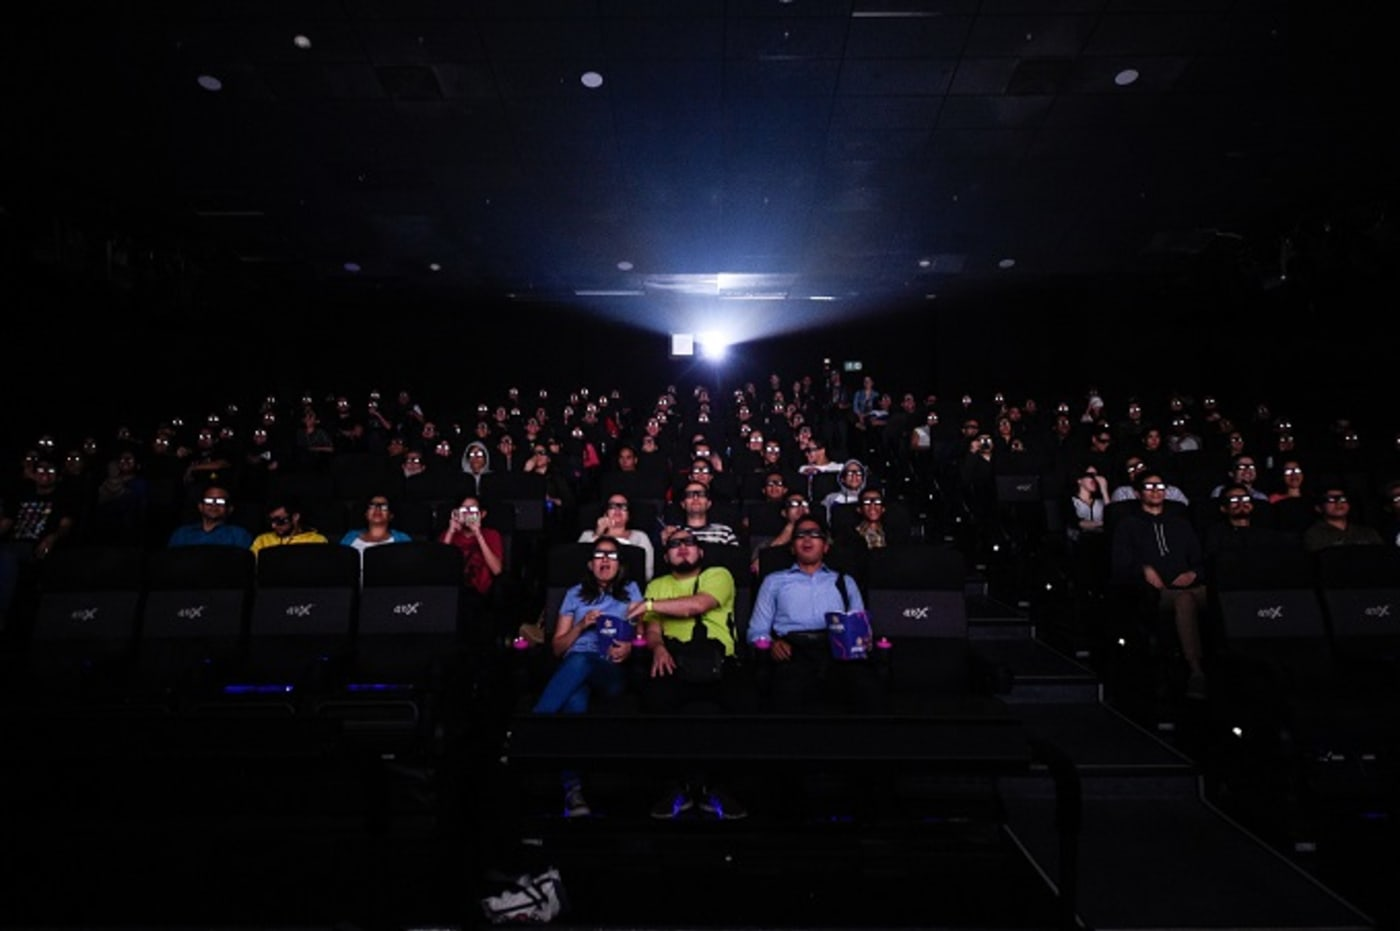 avengers audience